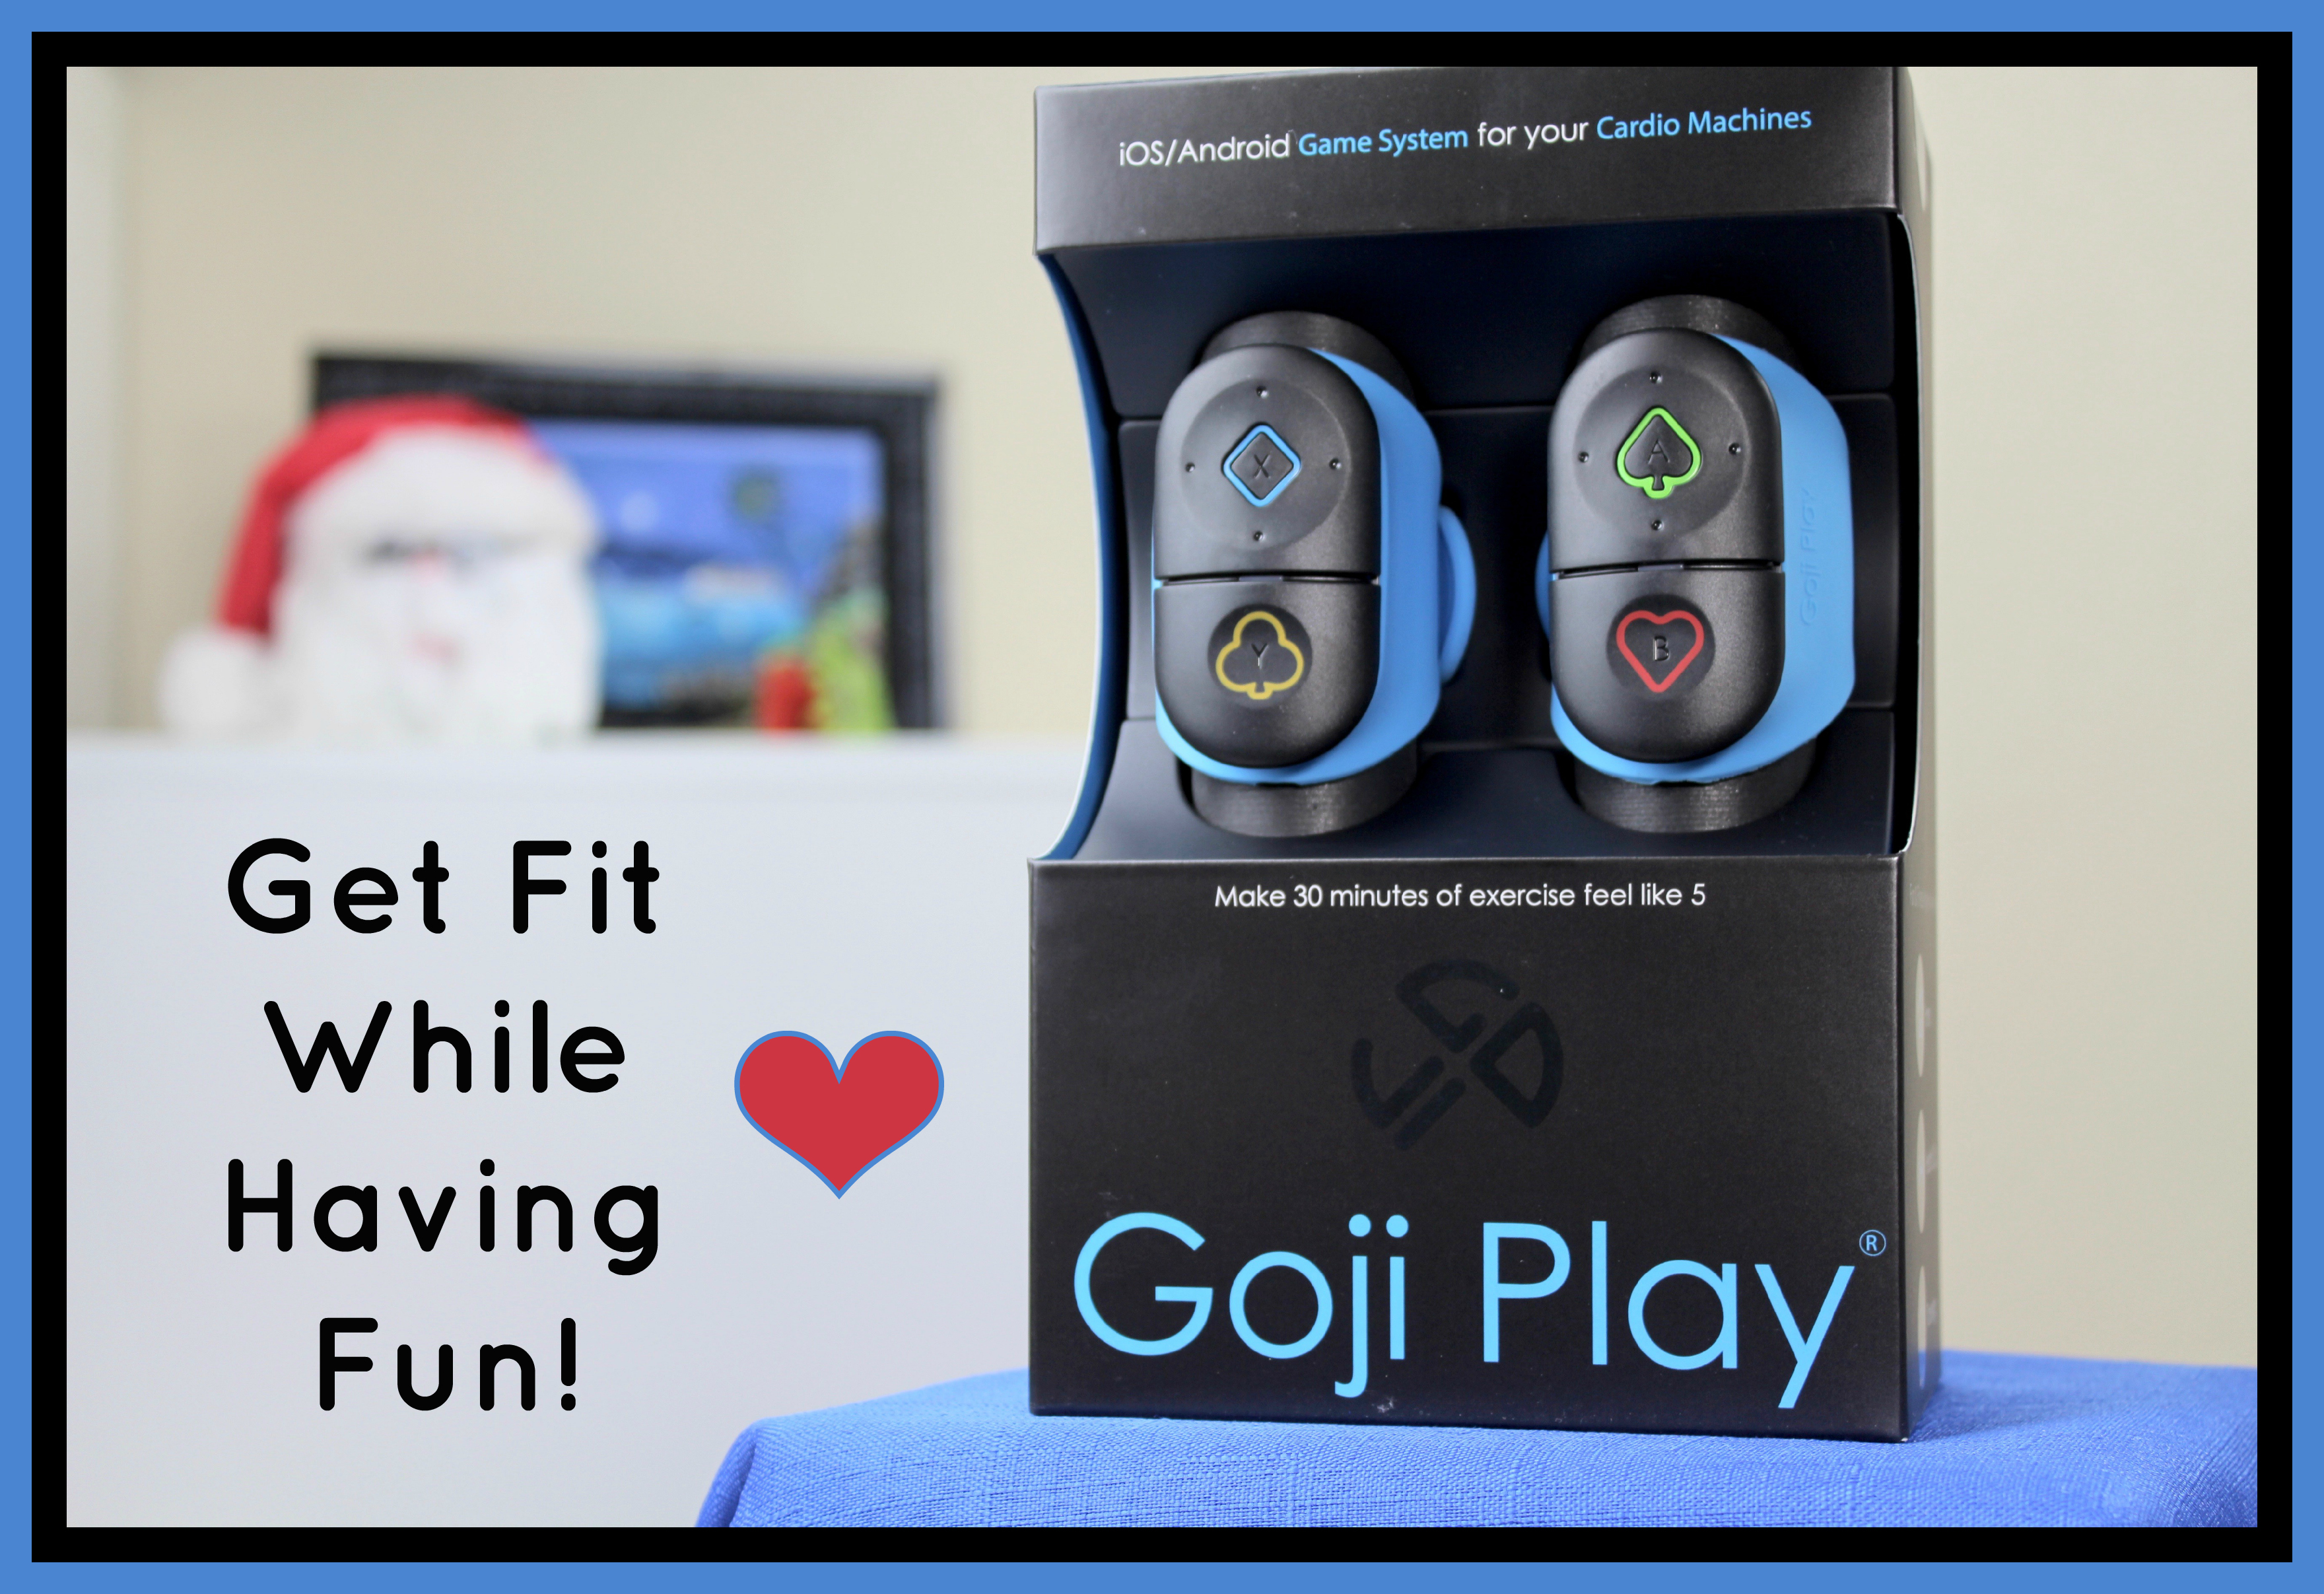 #GetUpAndGojiPlay #GojiPlay #Games #Technology #Fitness #ad